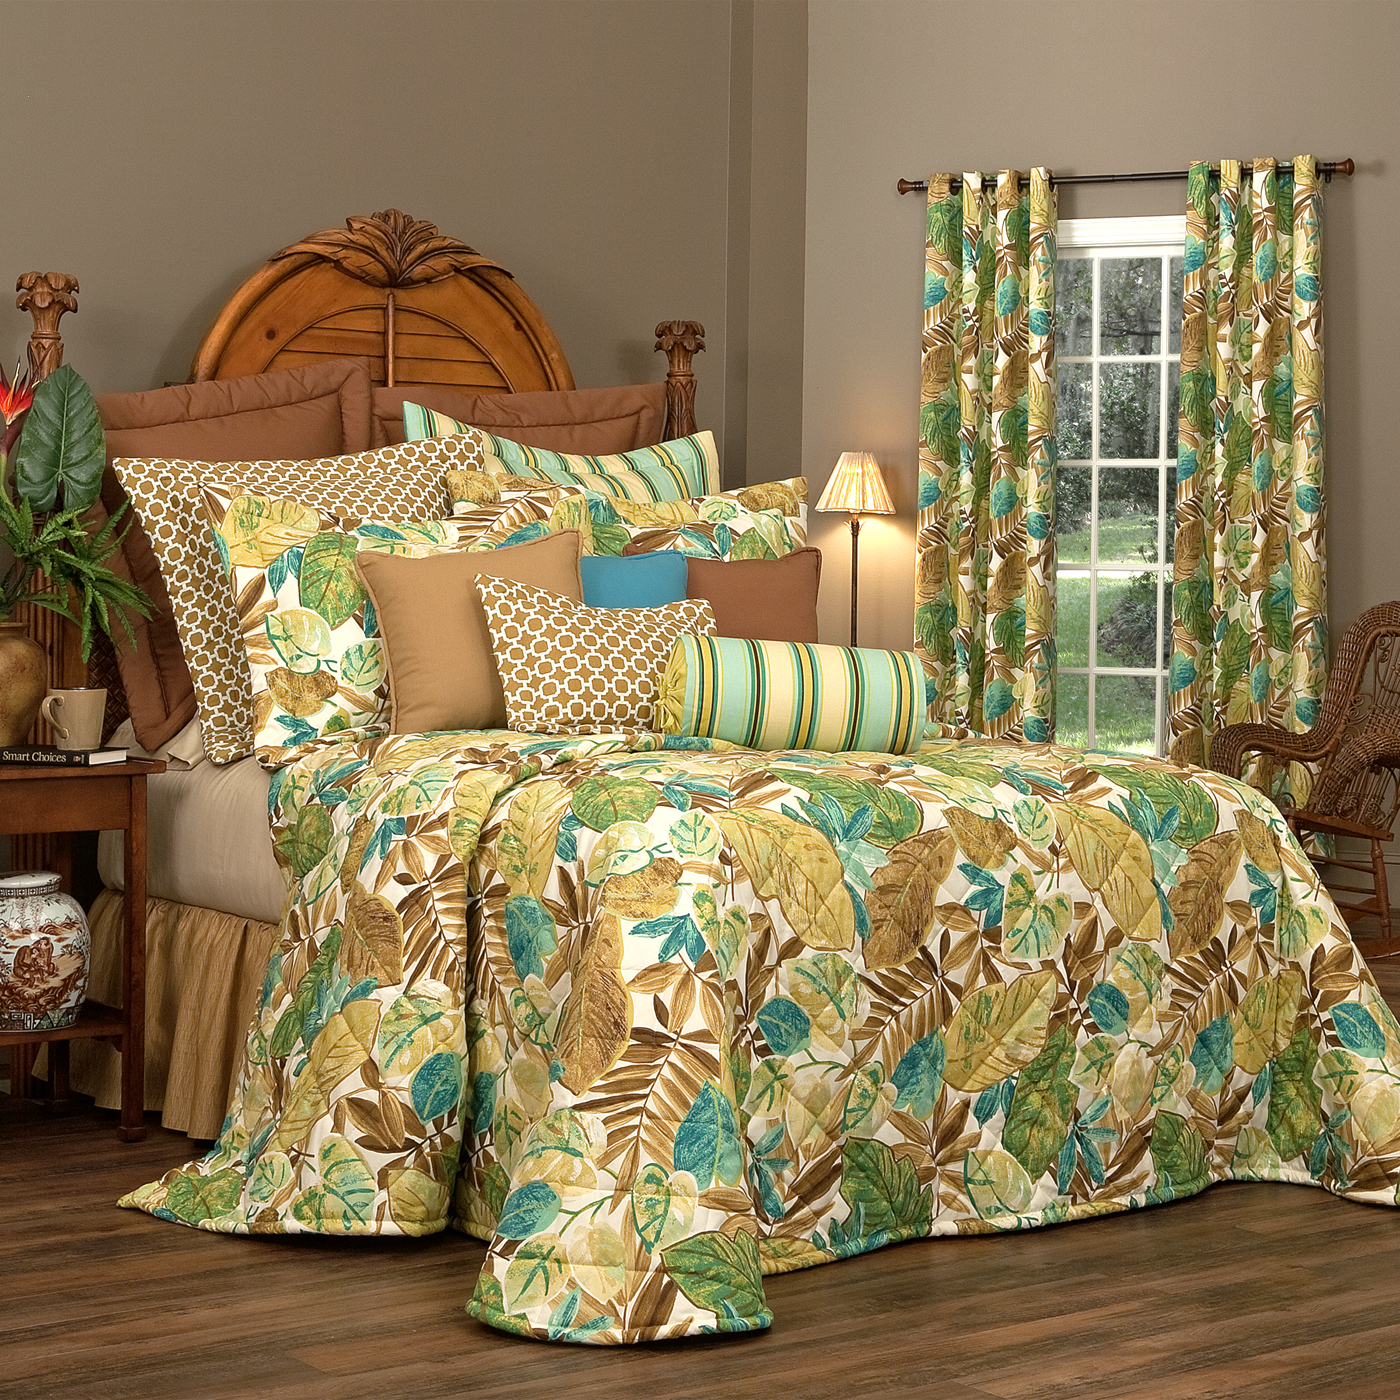 Bedspreads and curtains 2